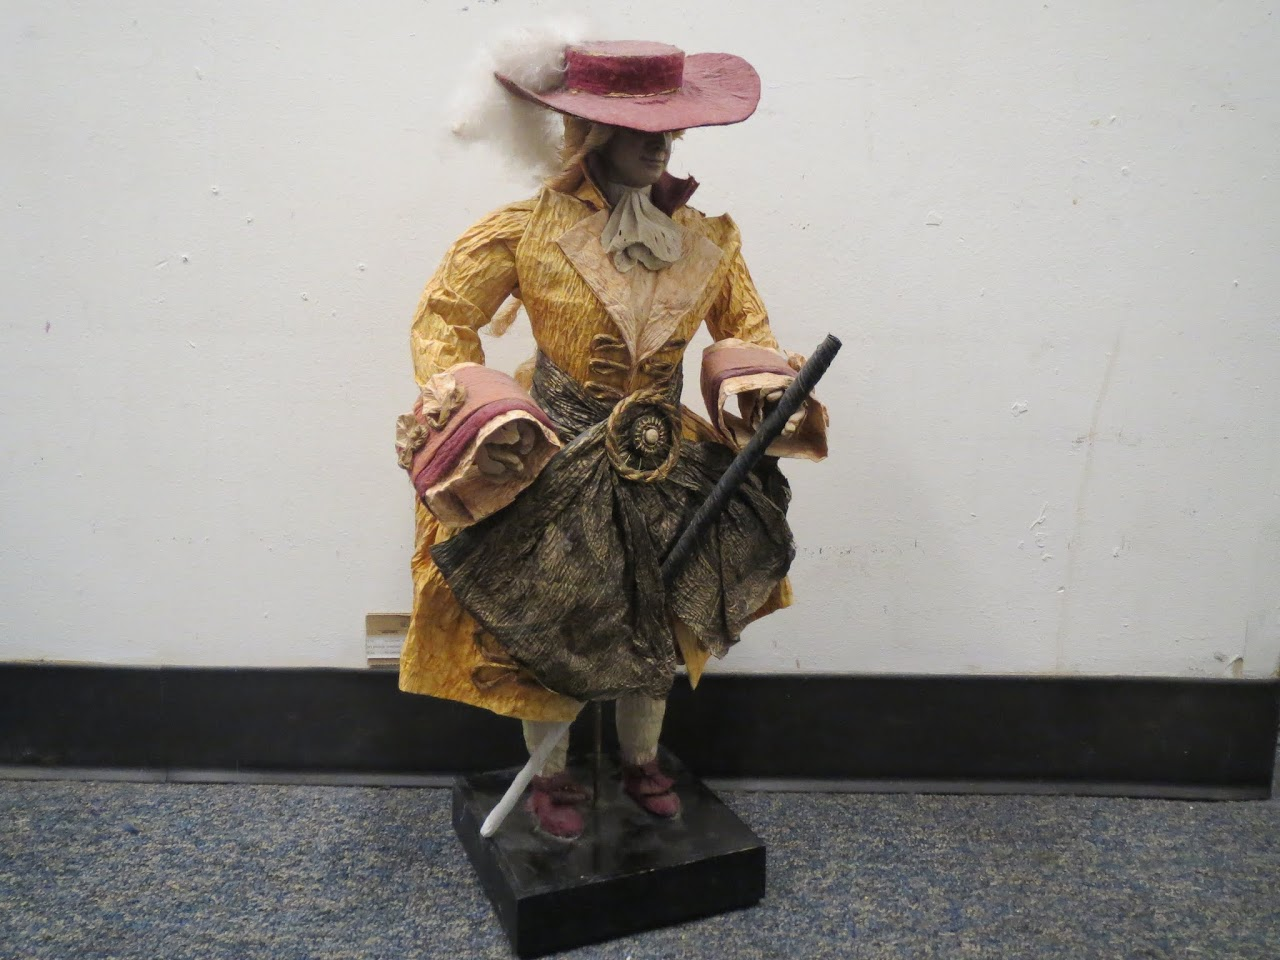 Painted Wood Dandy Figure